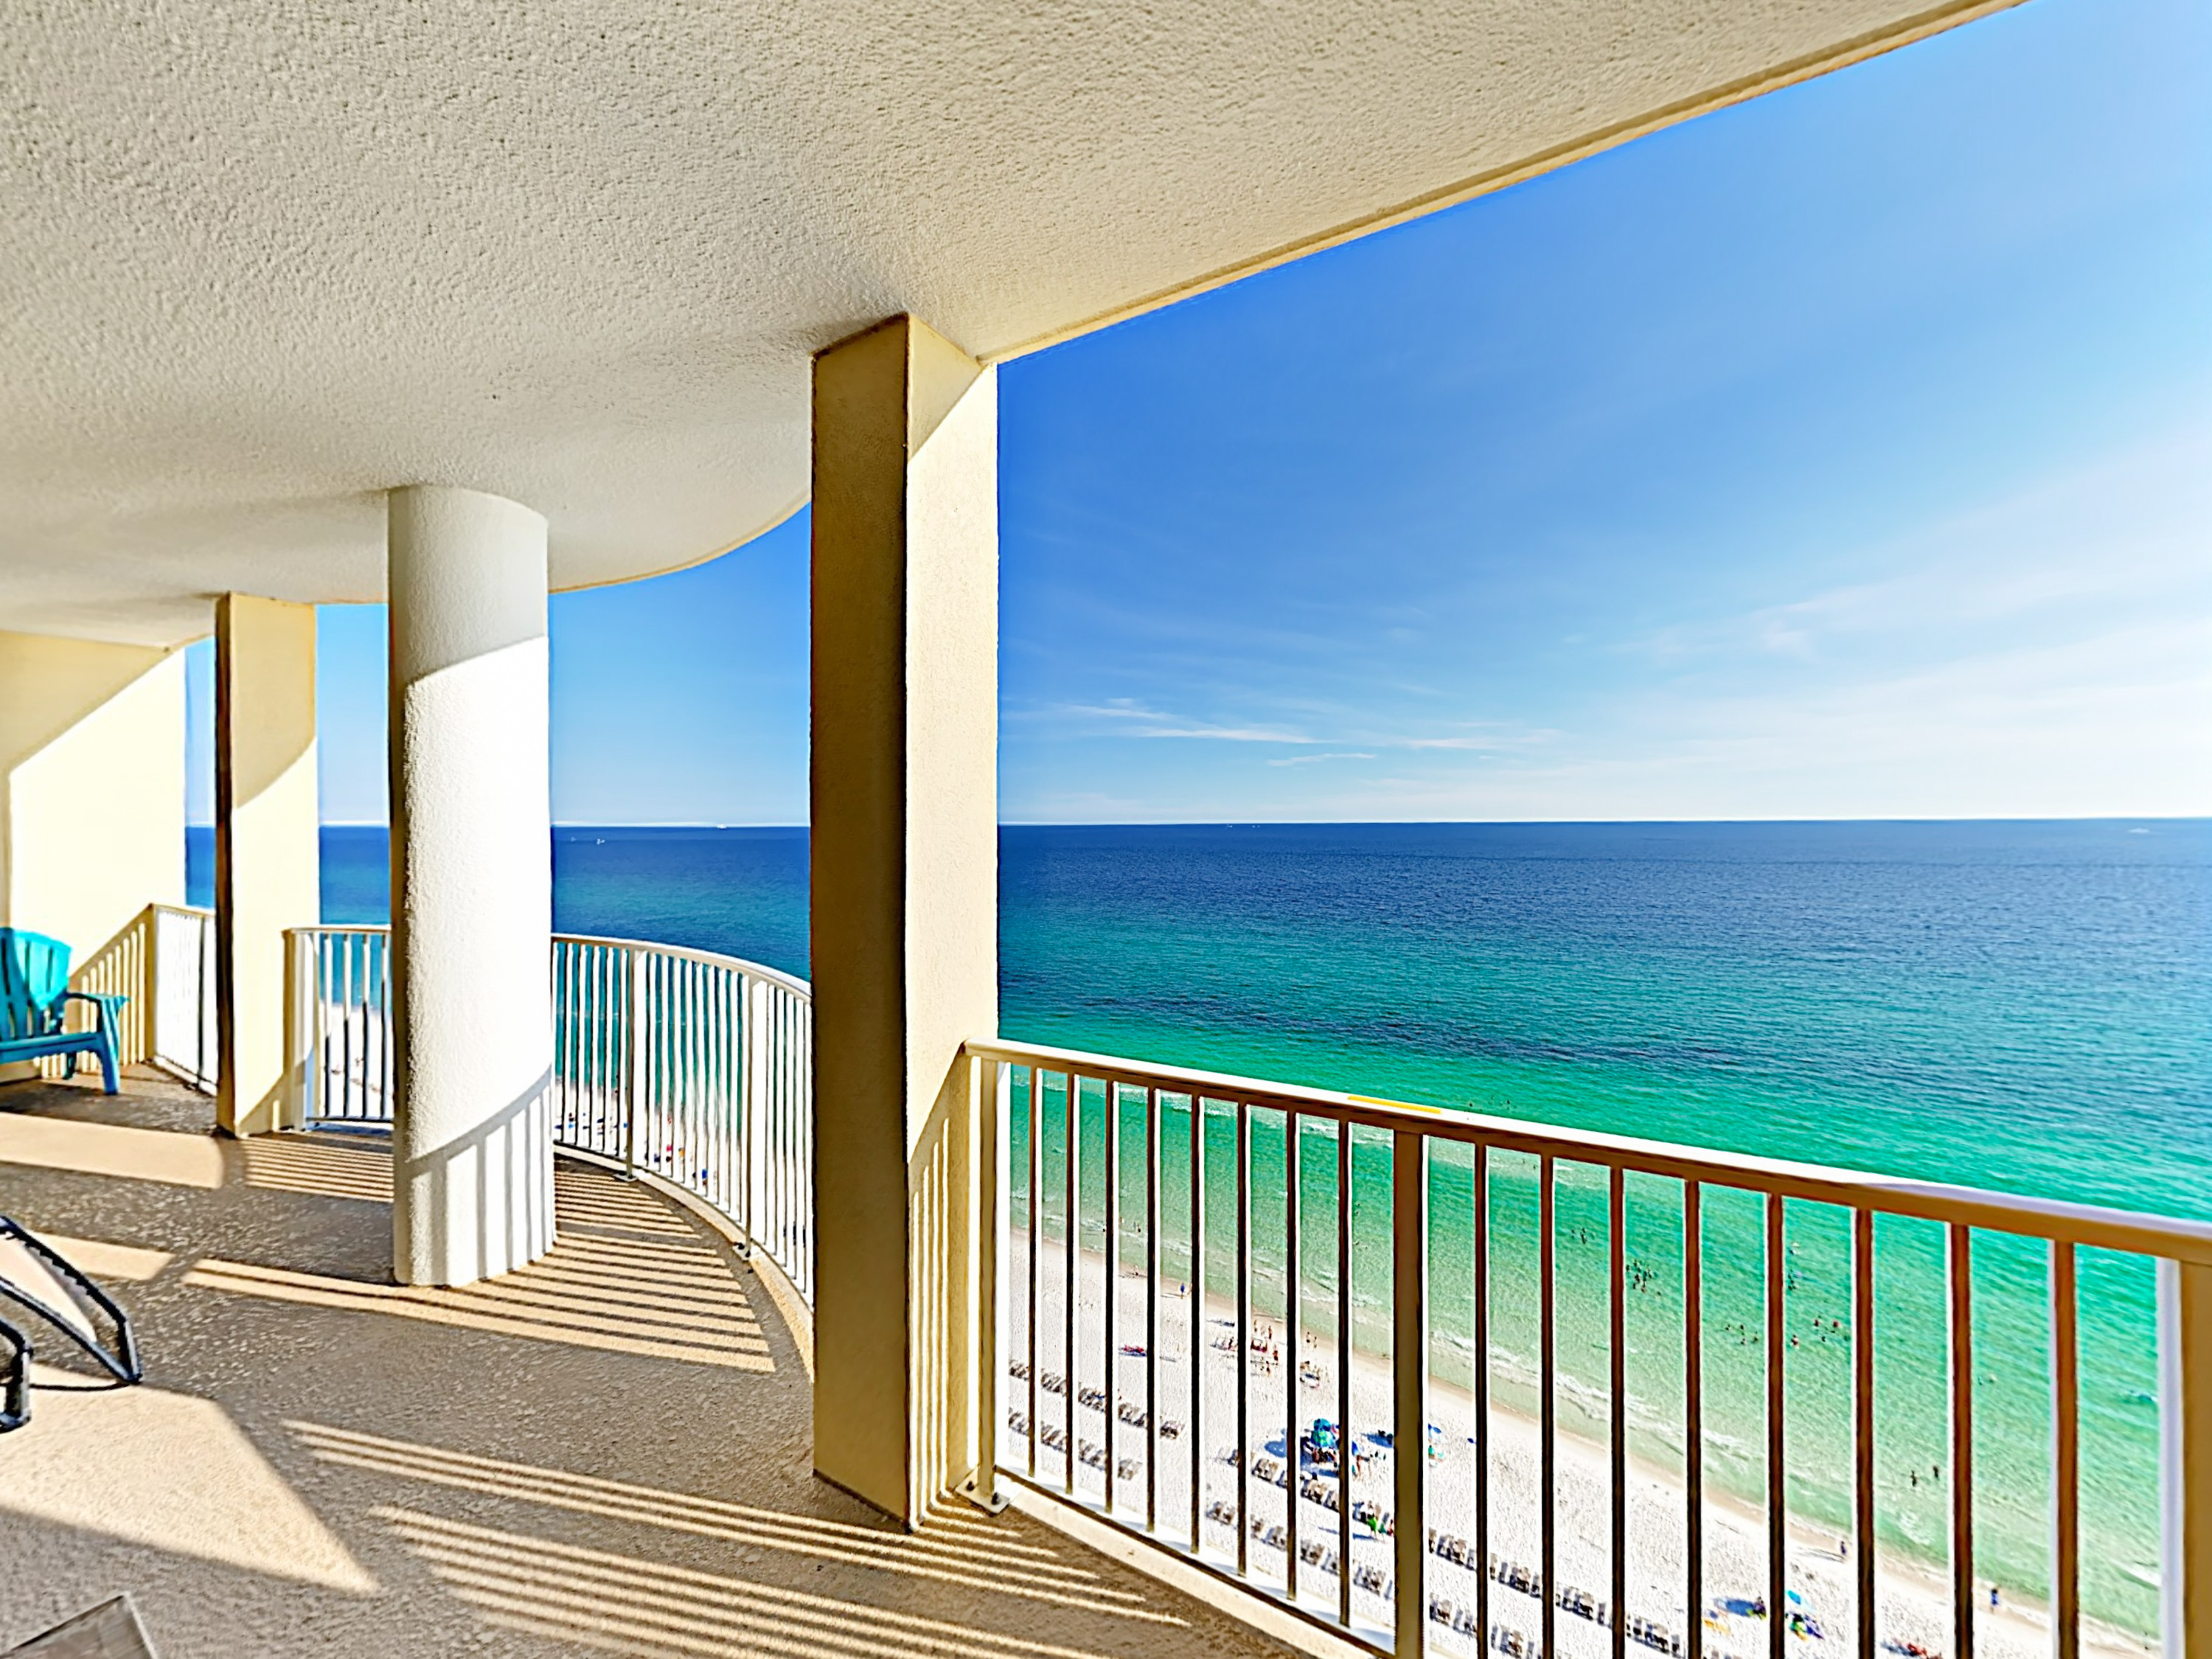 Panama City Beach FL Vacation Rental Welcome to Panama